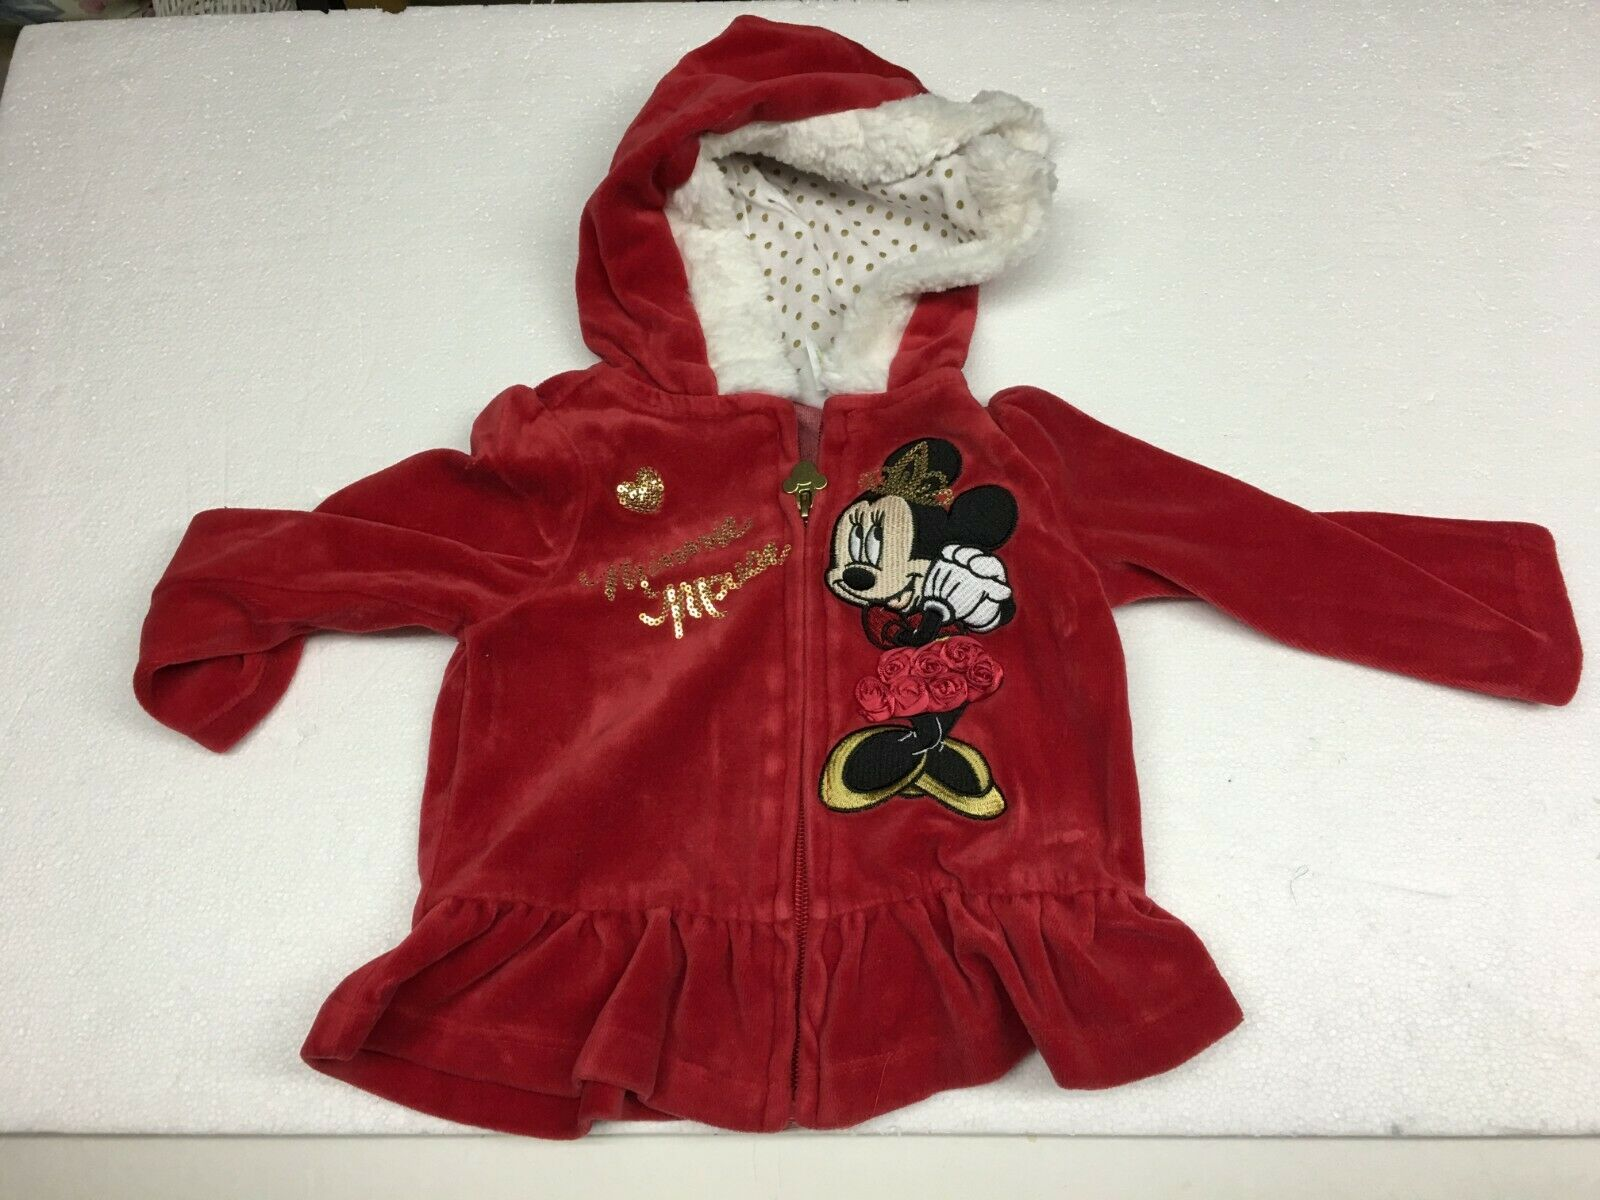 Assorted Girls/Boys Fall & Winter Jackets (Lot of 3) Sizes 18-24 months  YJ-100 Assorted - фотография #8